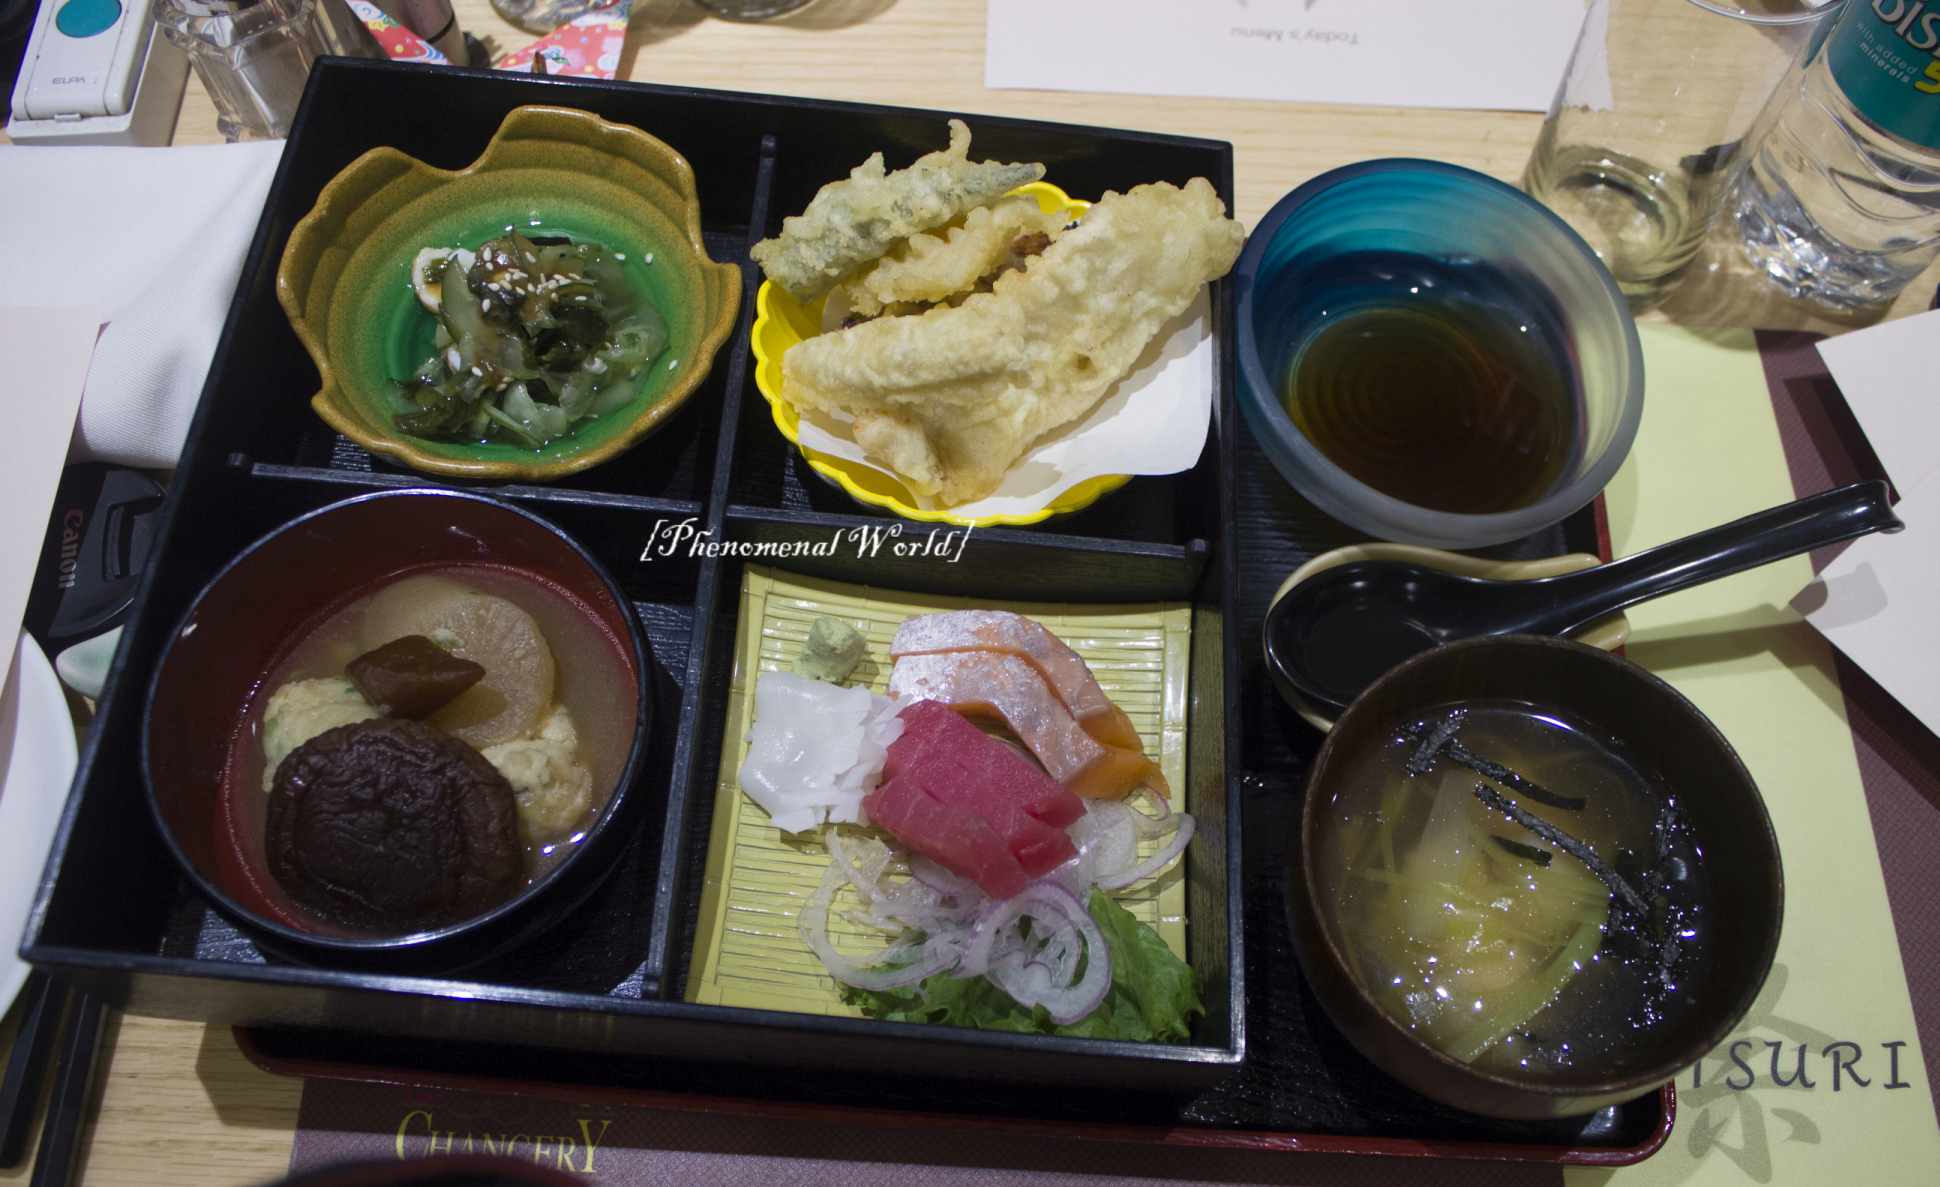 Attaining Zen through Food – A Matsuri Experience